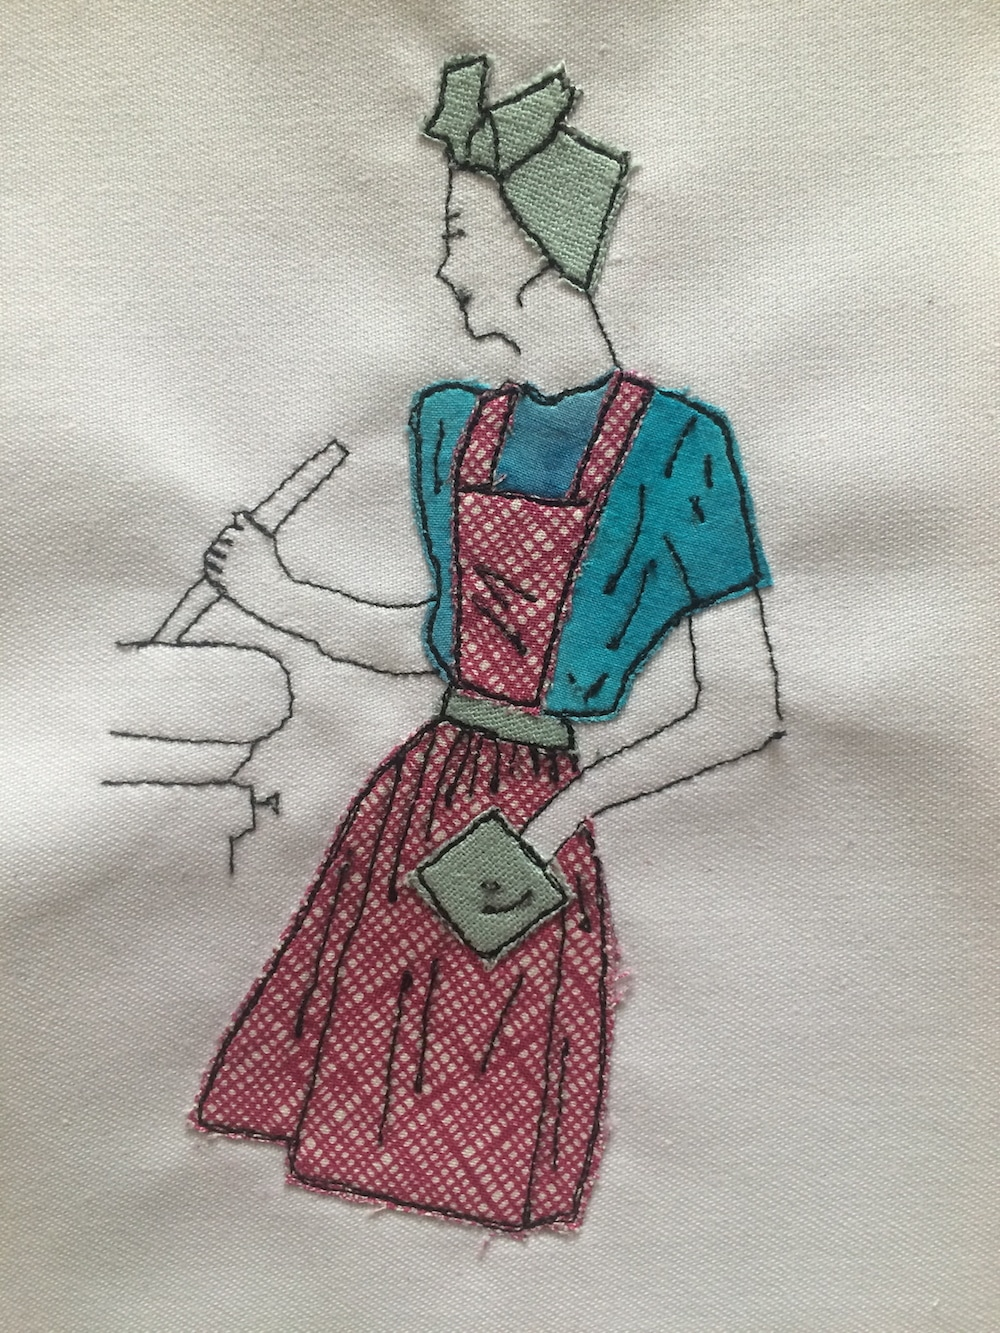 Free Motion Embroidery 1940s woman.jpg